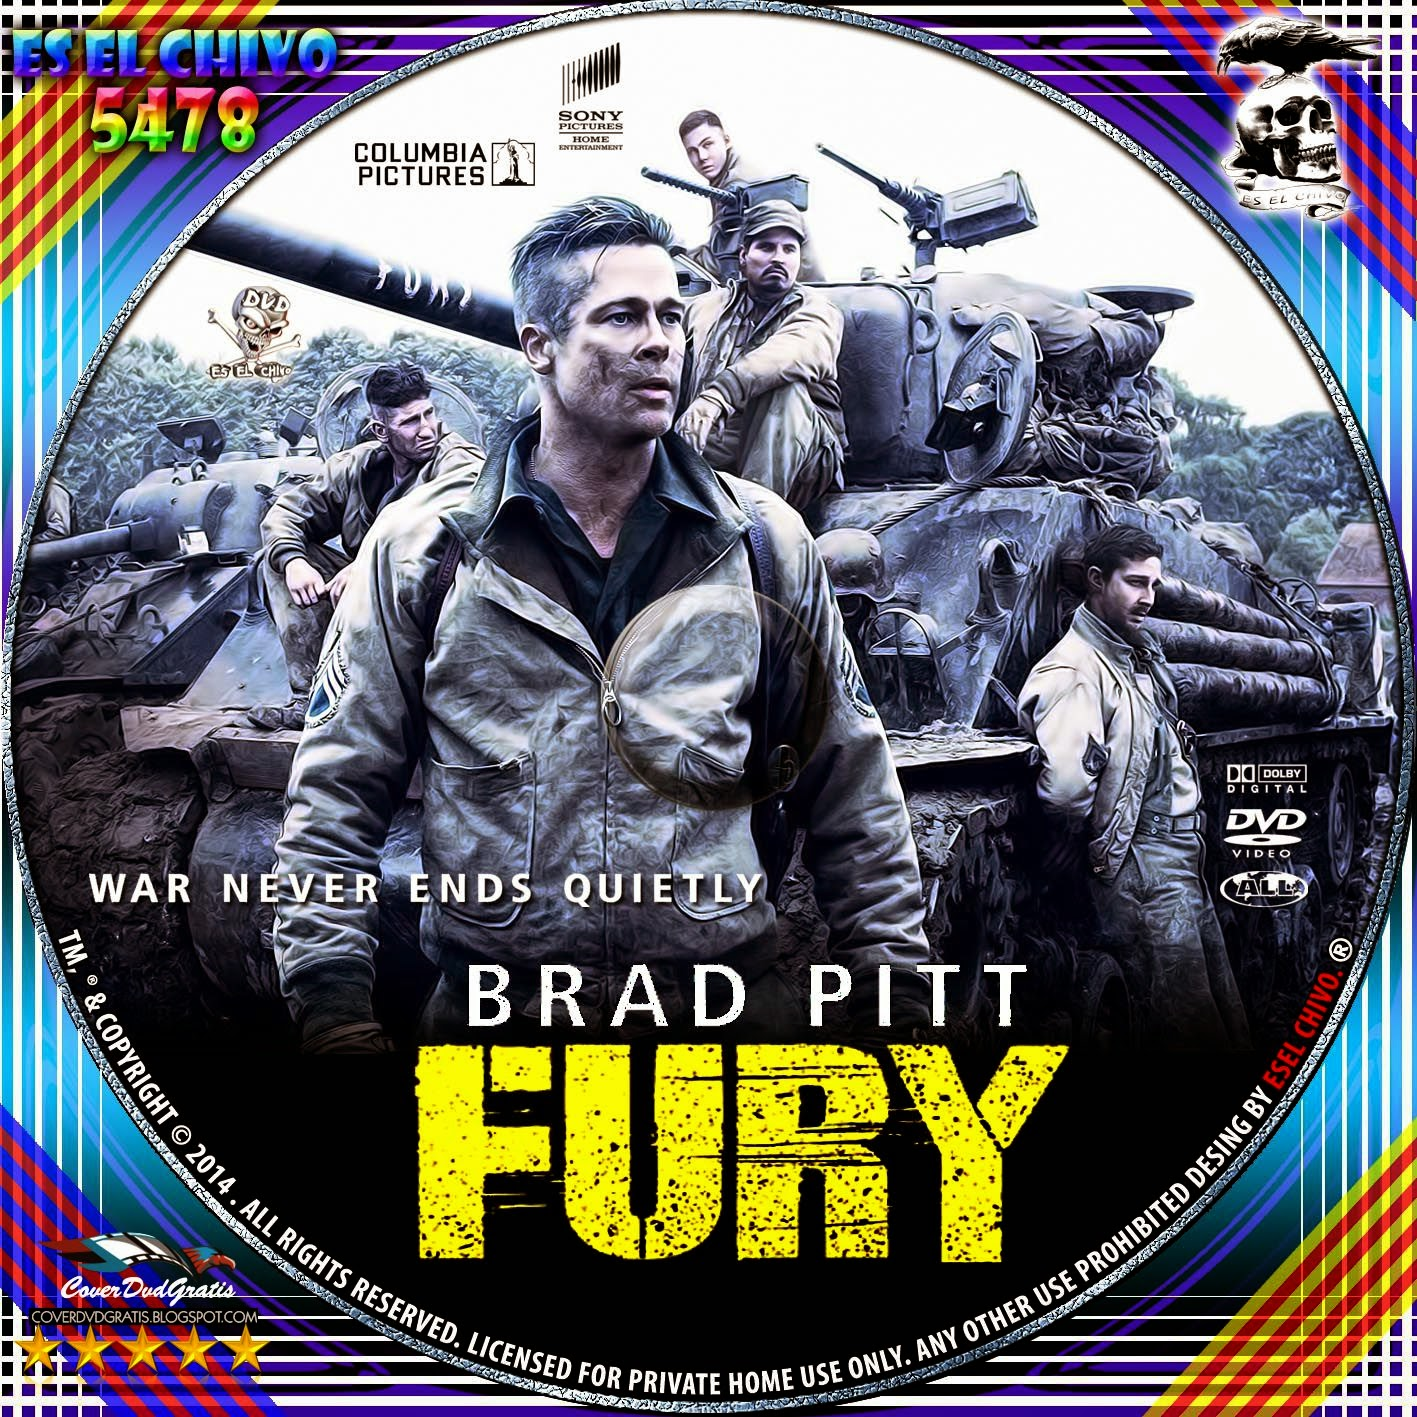 Fury 2014 Dvd Cover Related Keywords Suggestions Fury 2014 Dvd